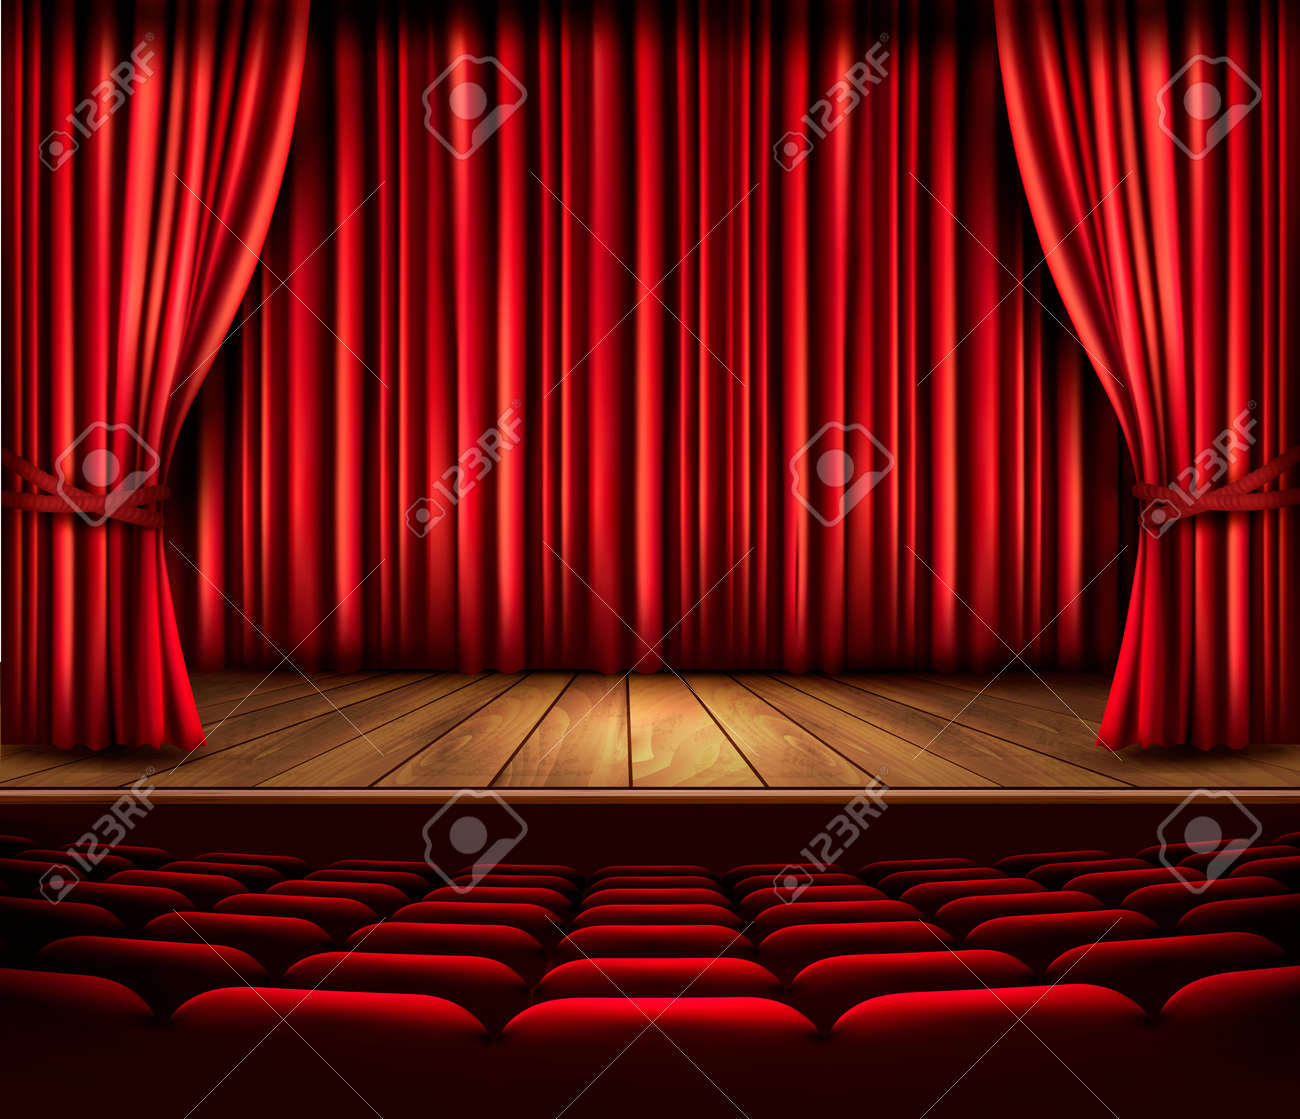 A Theater Stage With Red Curtain Seats And Spotlight Vector Stock